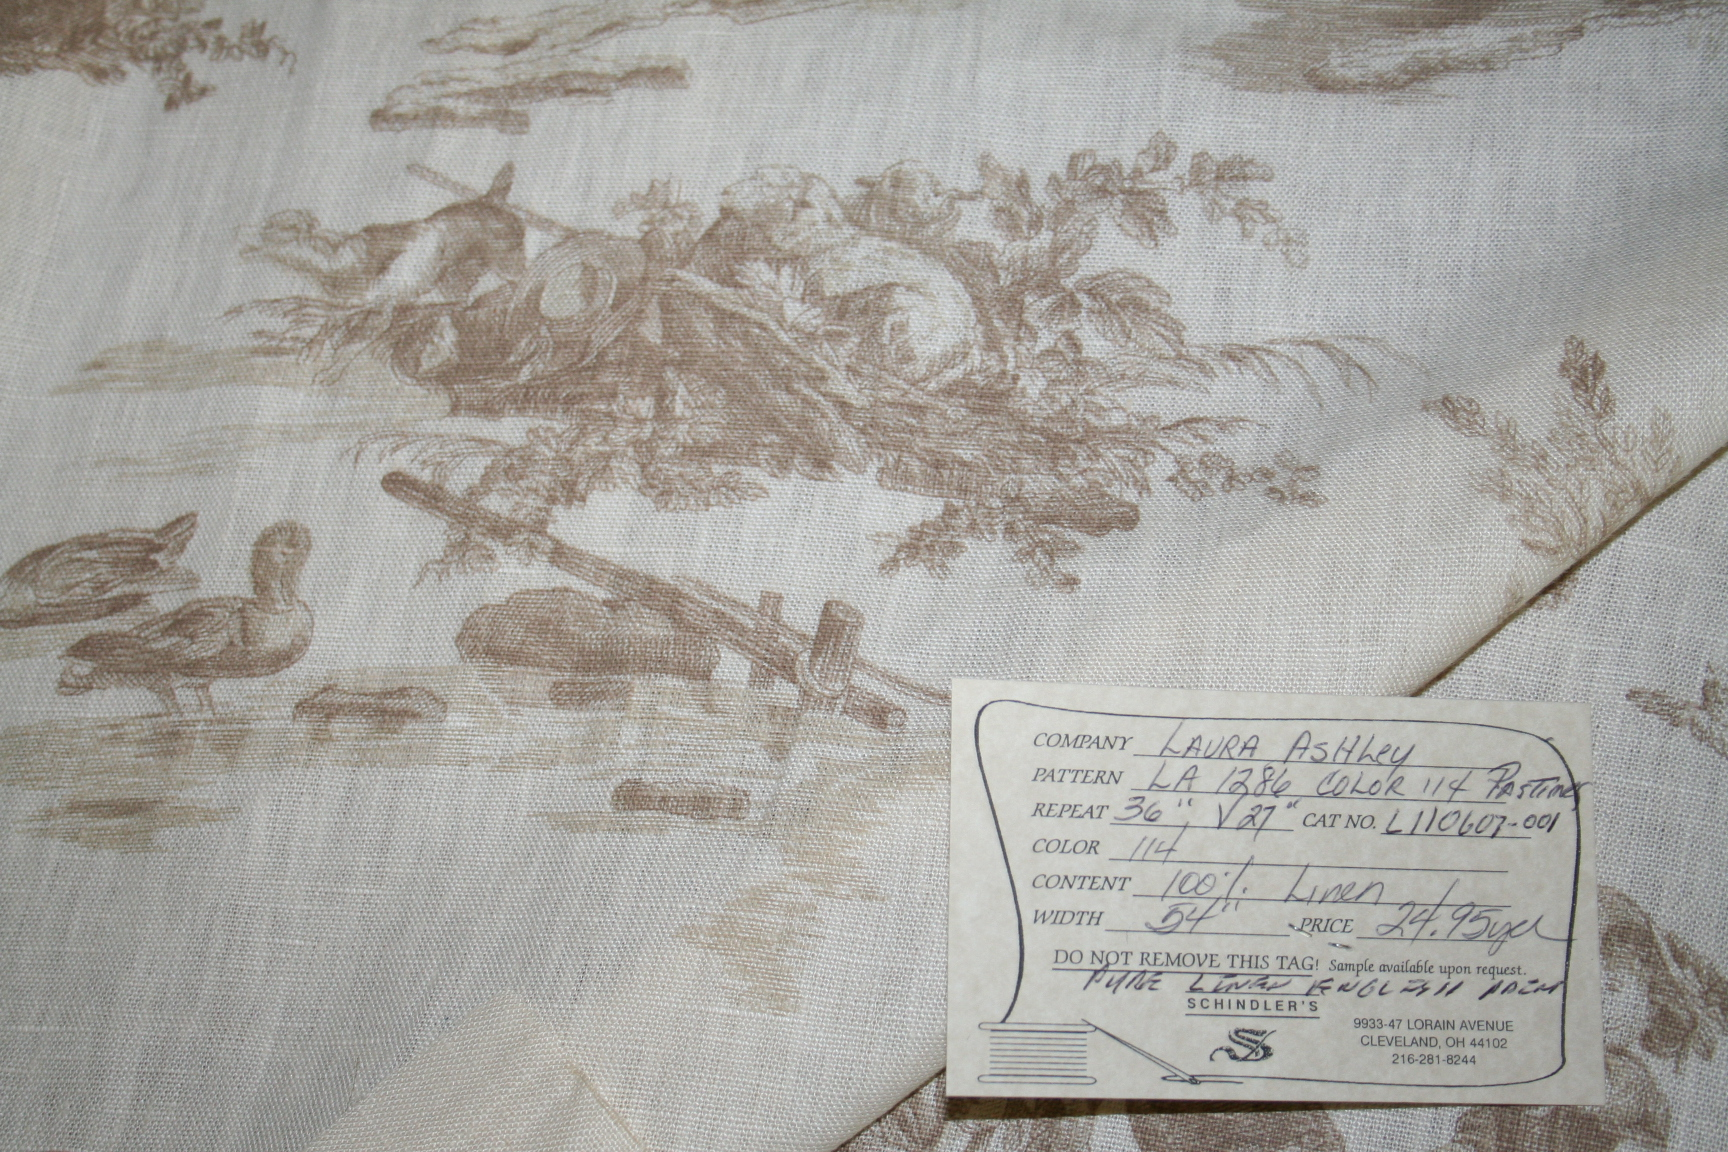 Laura Ashley Pastimes Willow Linen Color114 Toile